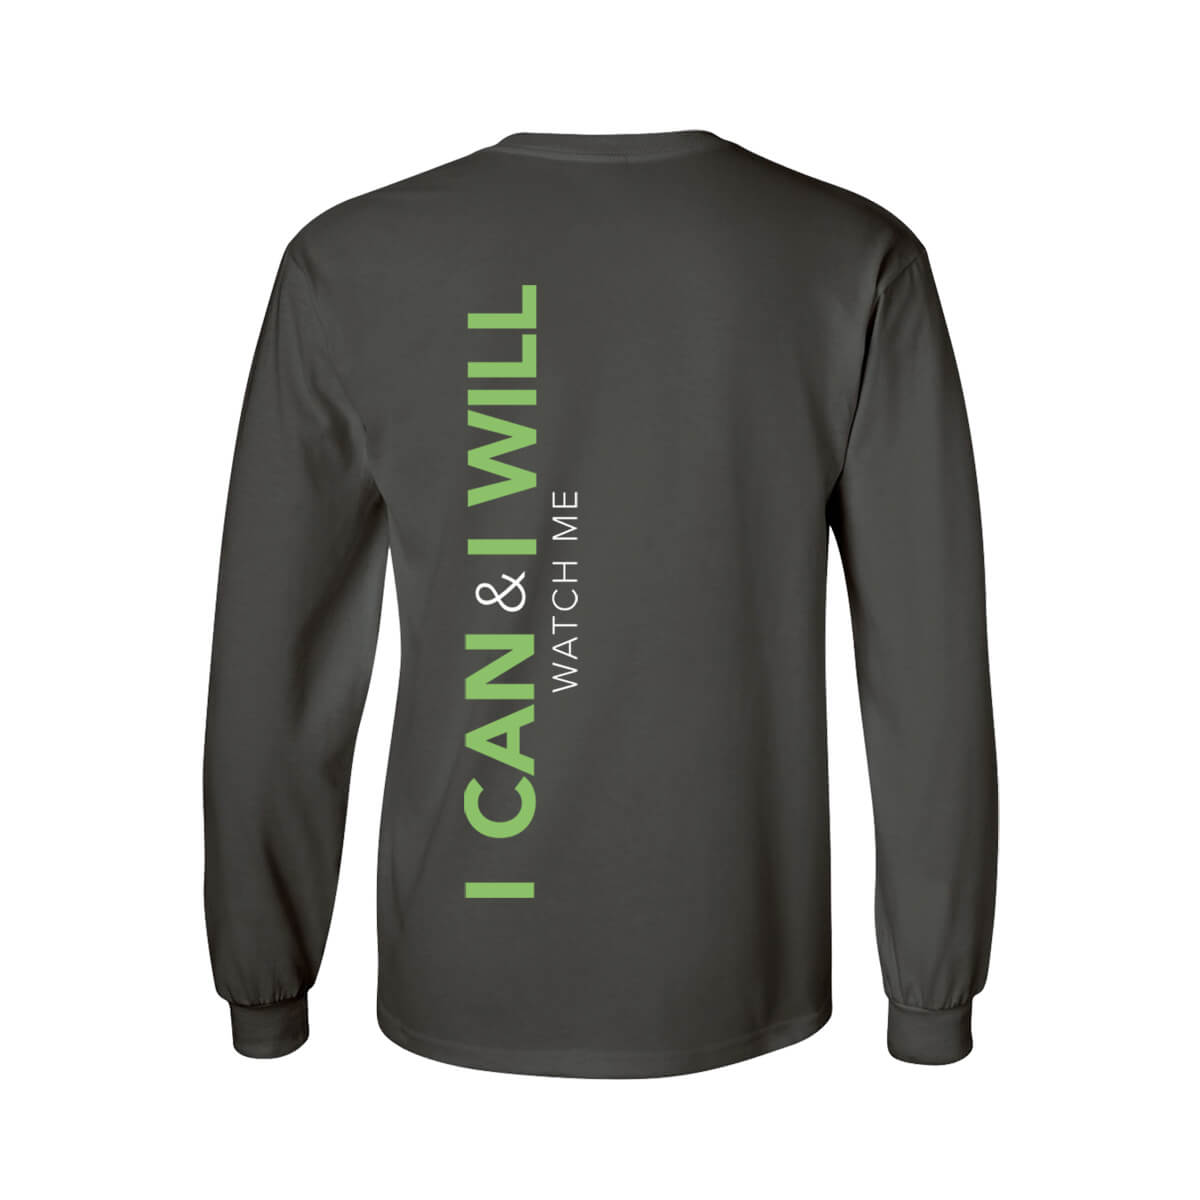 Crewneck Long Sleeve Tee - back